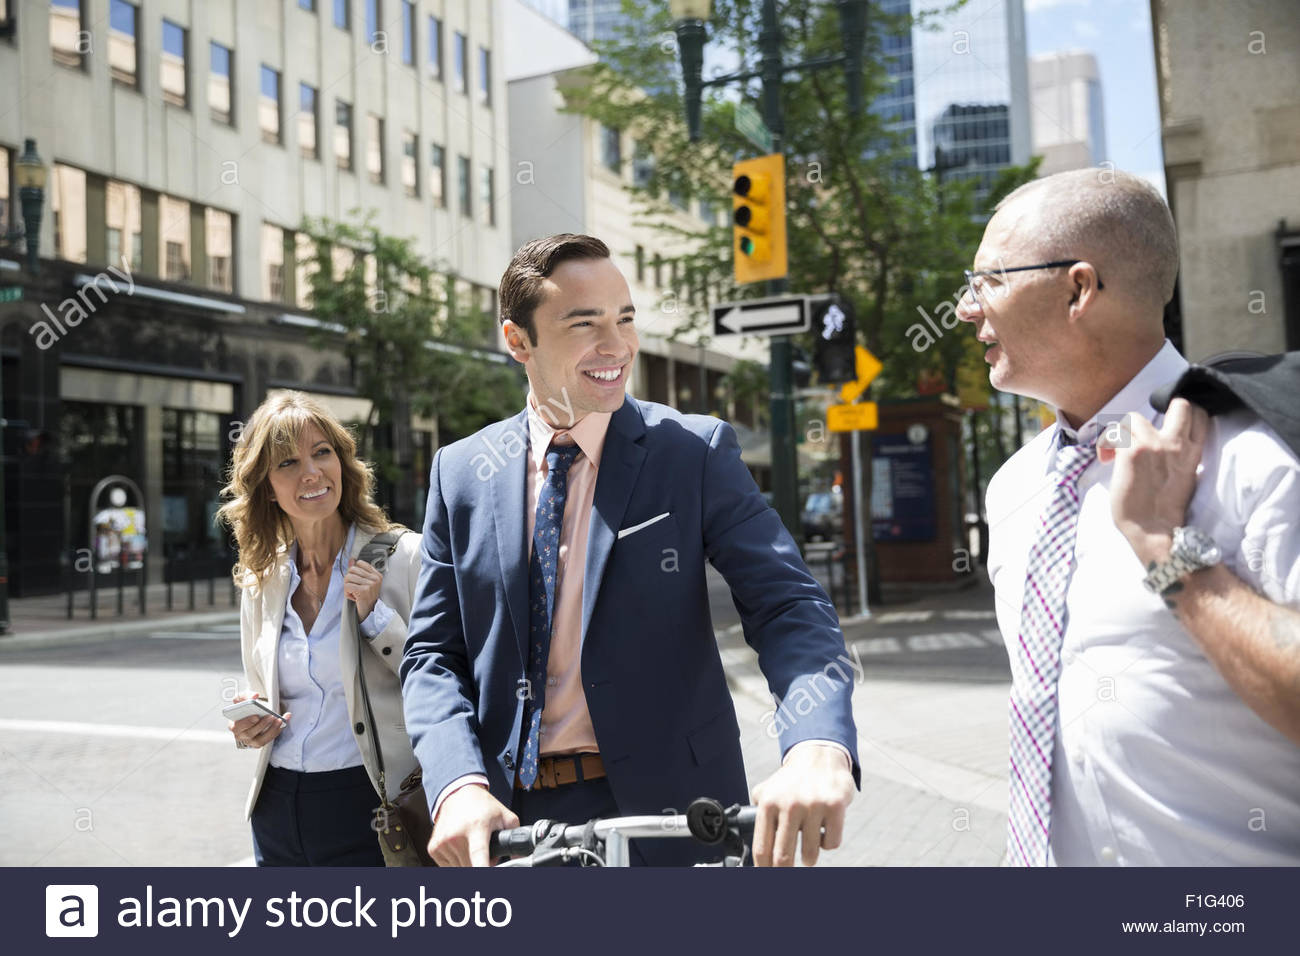 Business people crossing city street - Stock Image